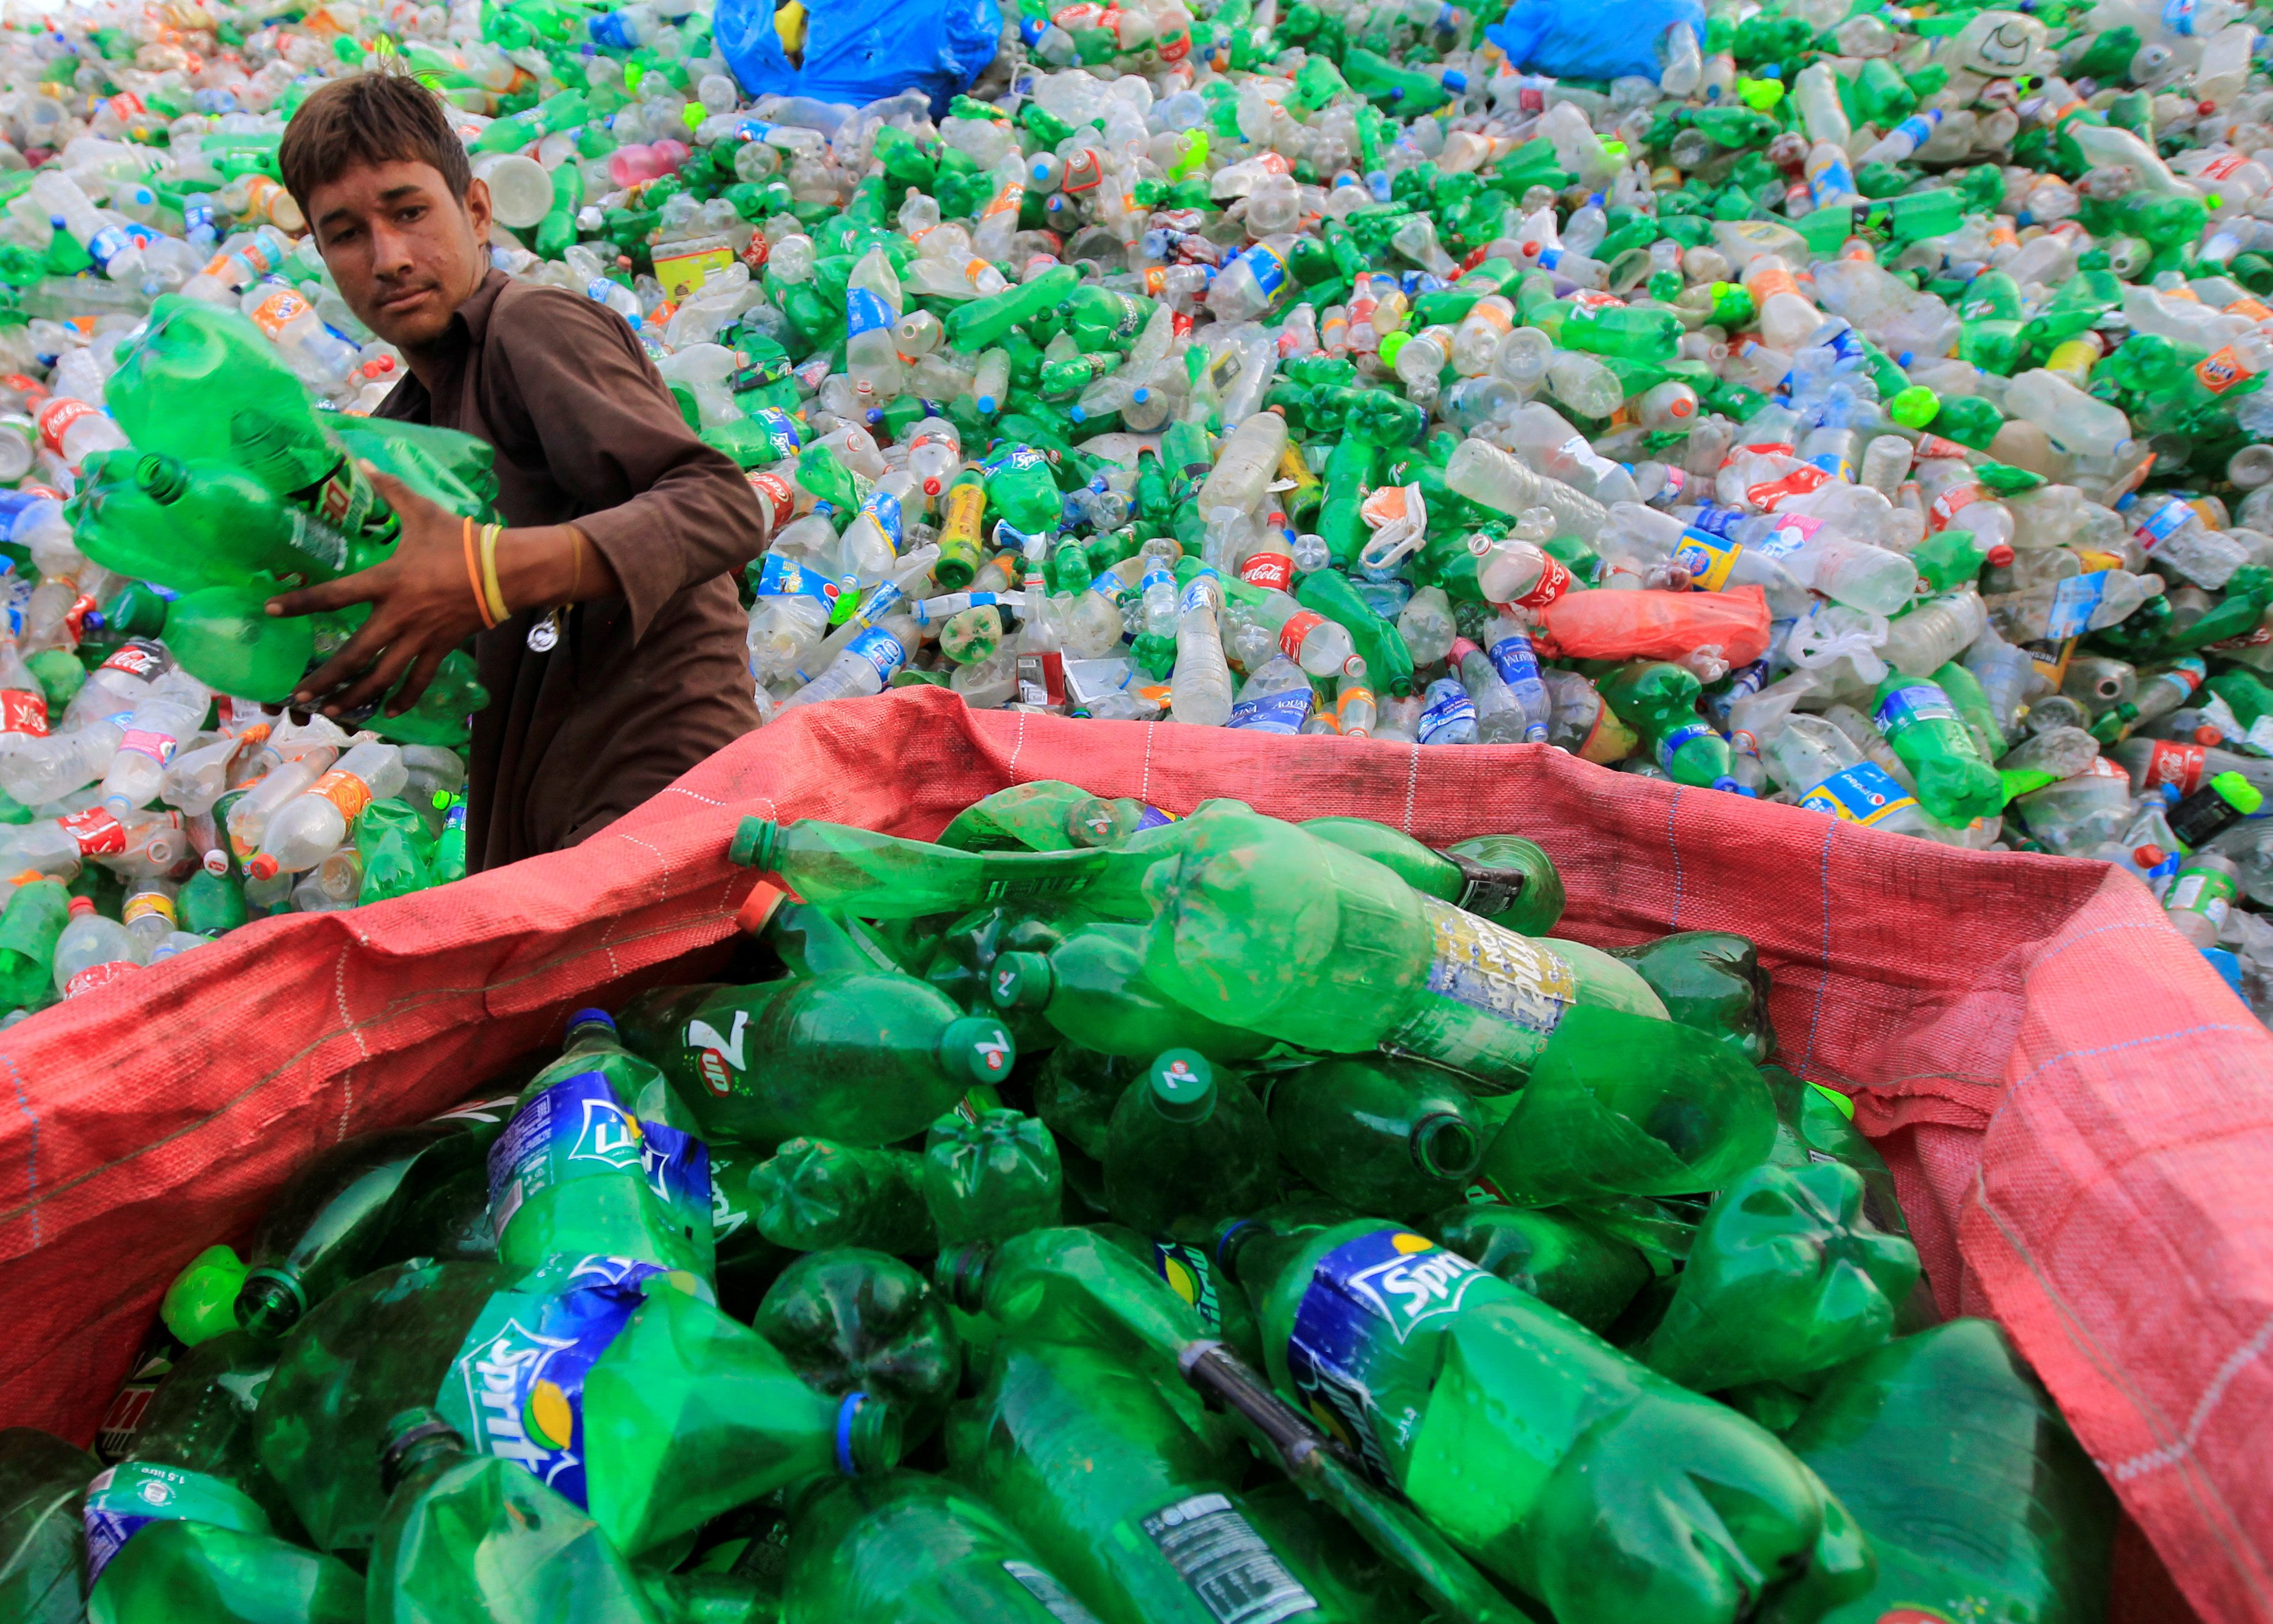 A worker sorts bottles to throw them in a plastic bottle chipper at a recycling workshop in Islamabad, Pakistan September 12, 2017.  REUTERS/Caren Firouz